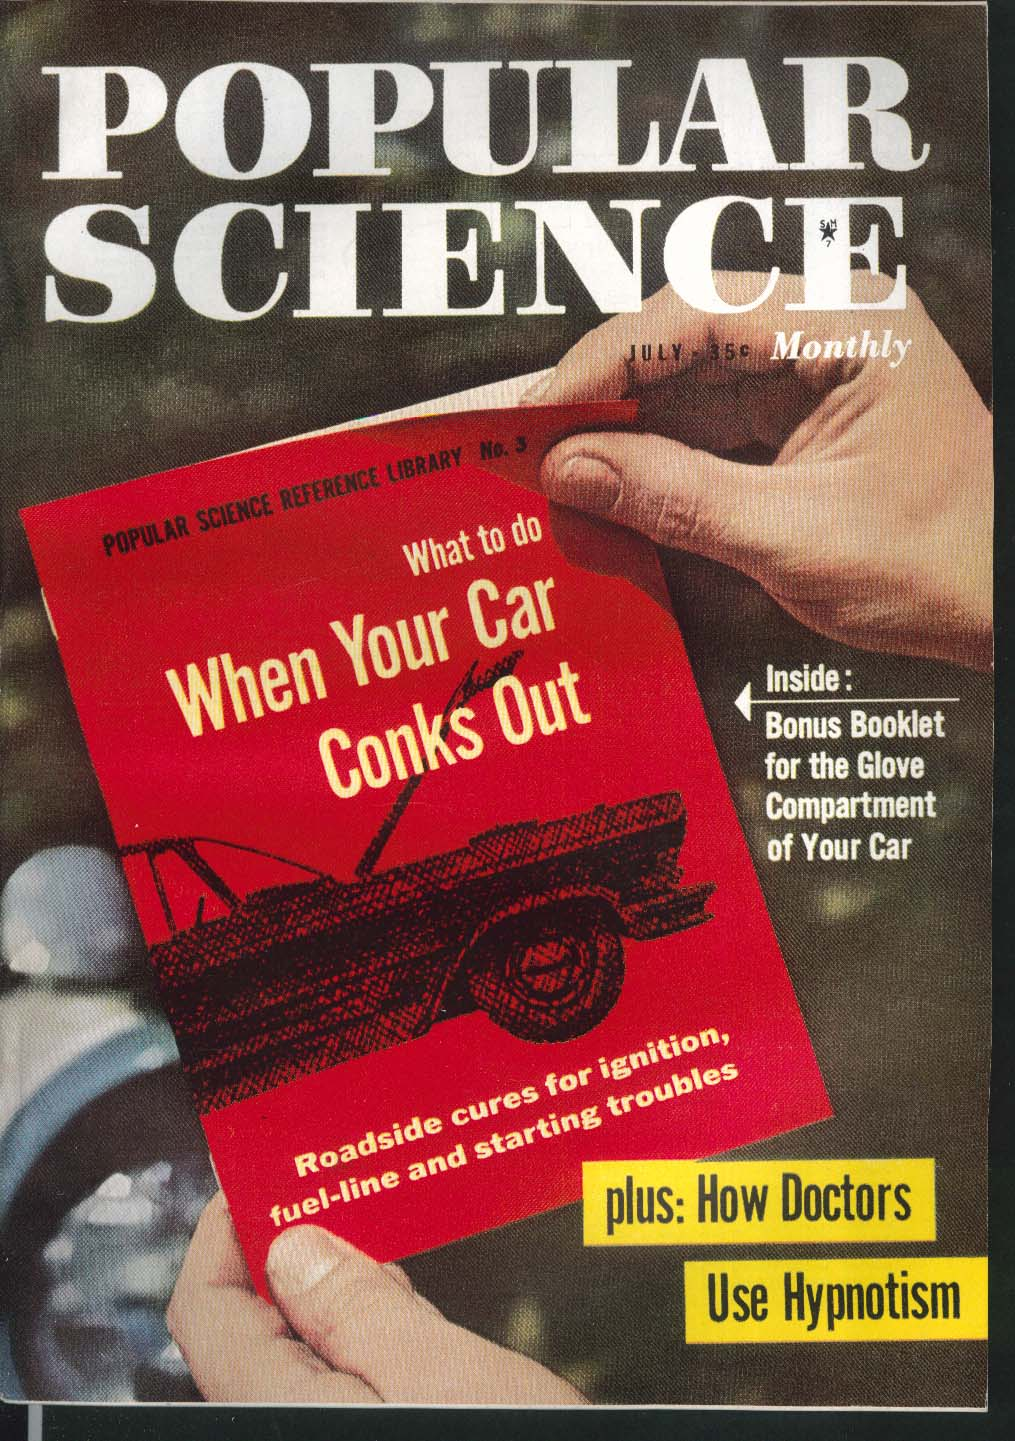 POPULAR SCIENCE Chevrolet Hypnotism Glove Compartment Booklet 7 1957